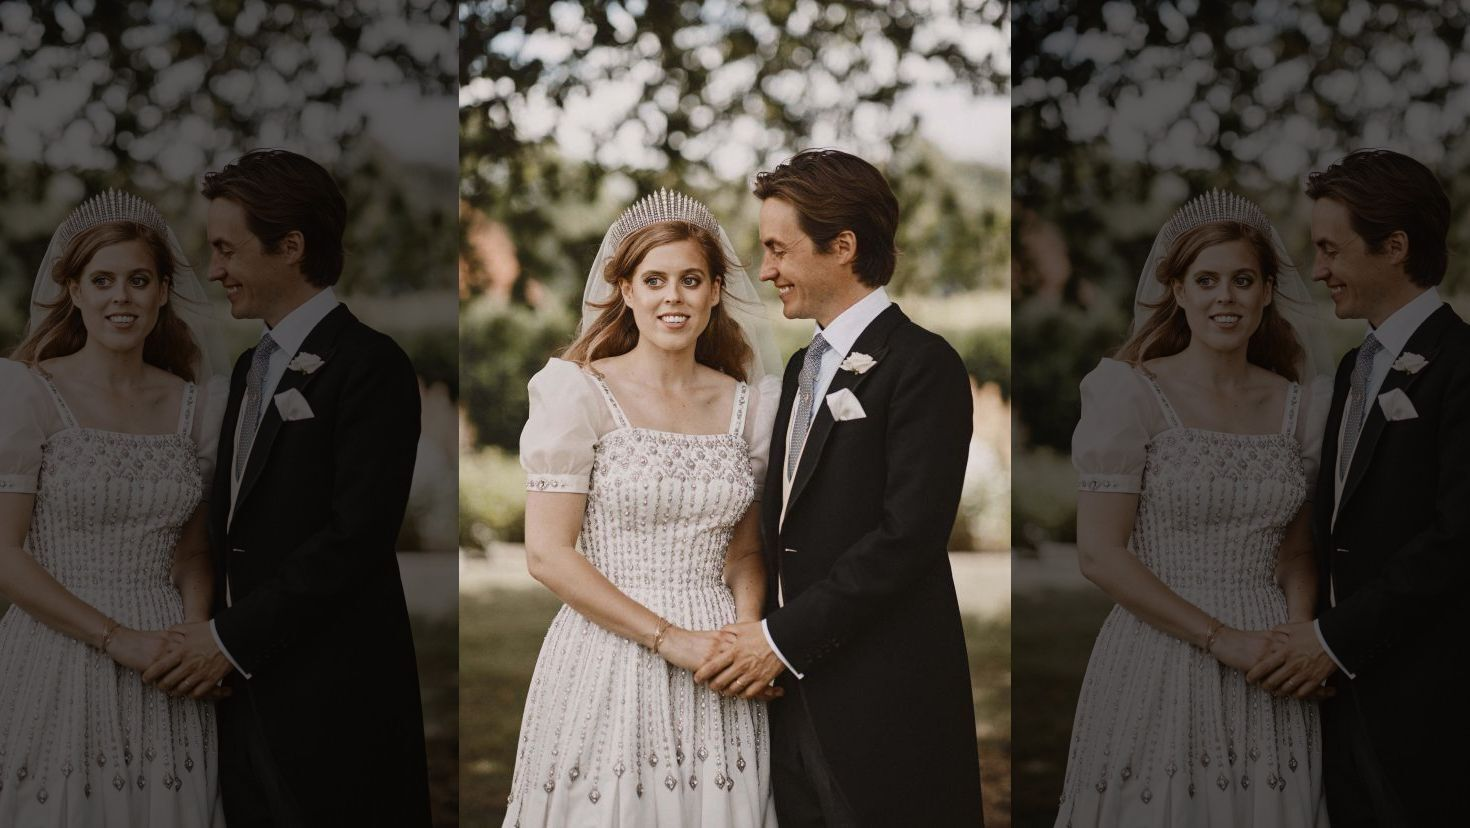 Princess Beatrice marries in Queen Elizabeth's dress